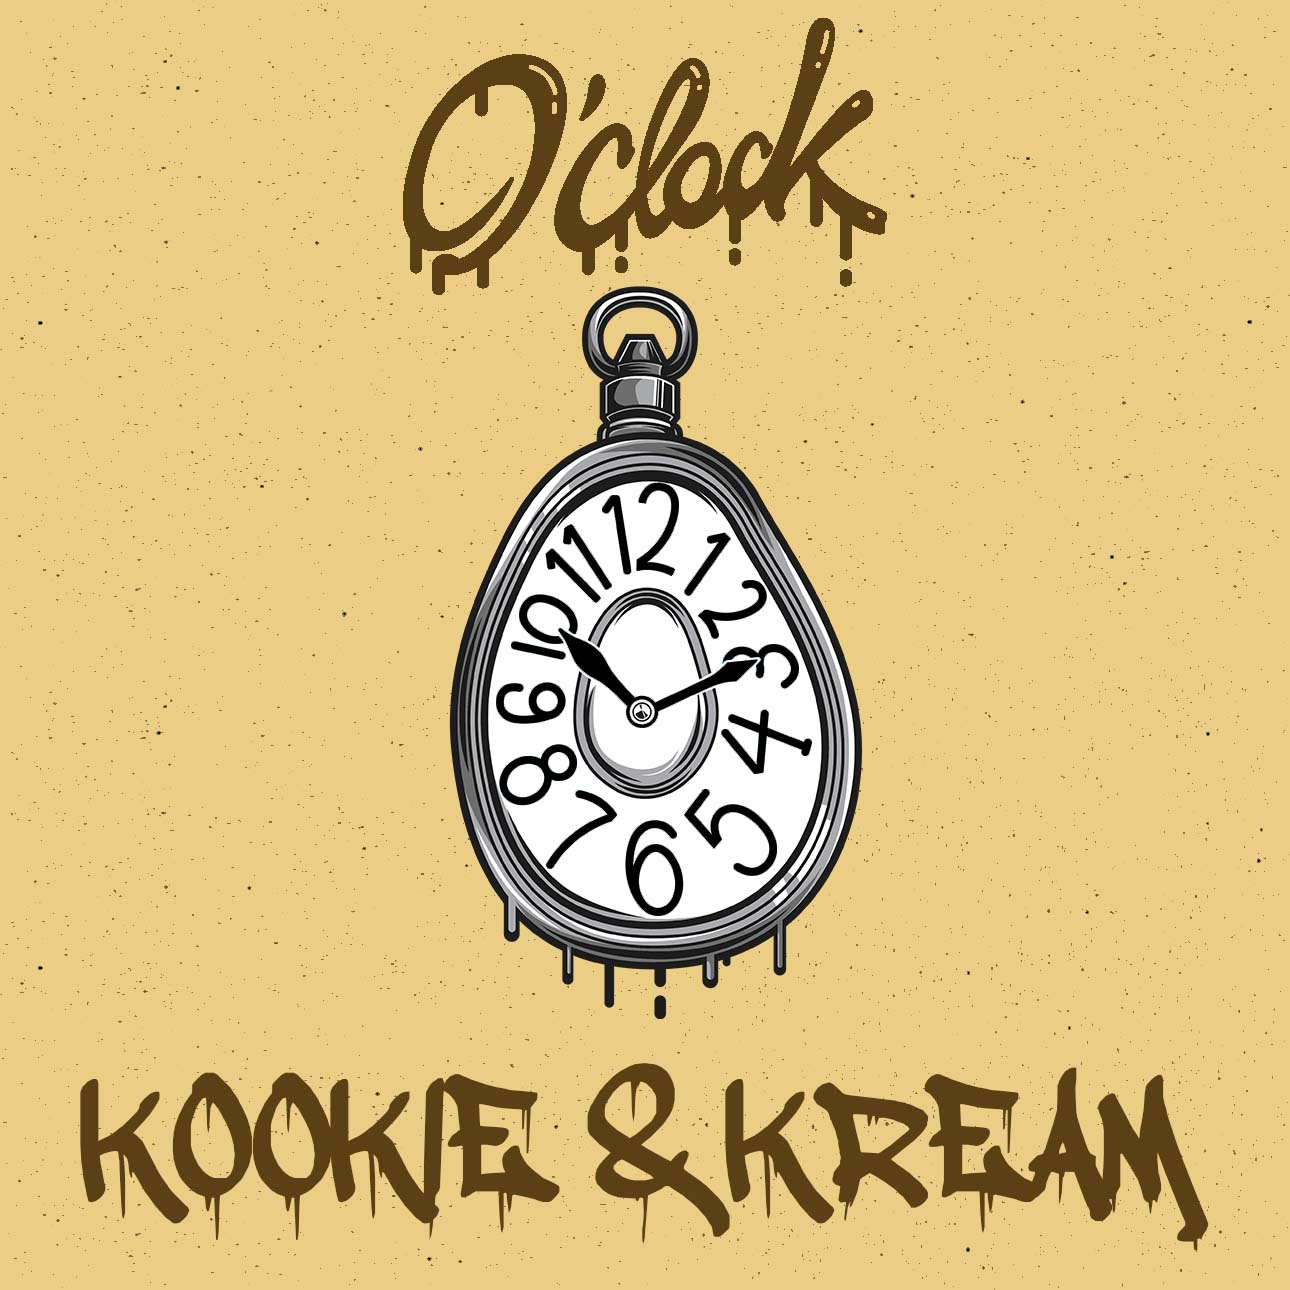 arôme-kookie-kream-oclock